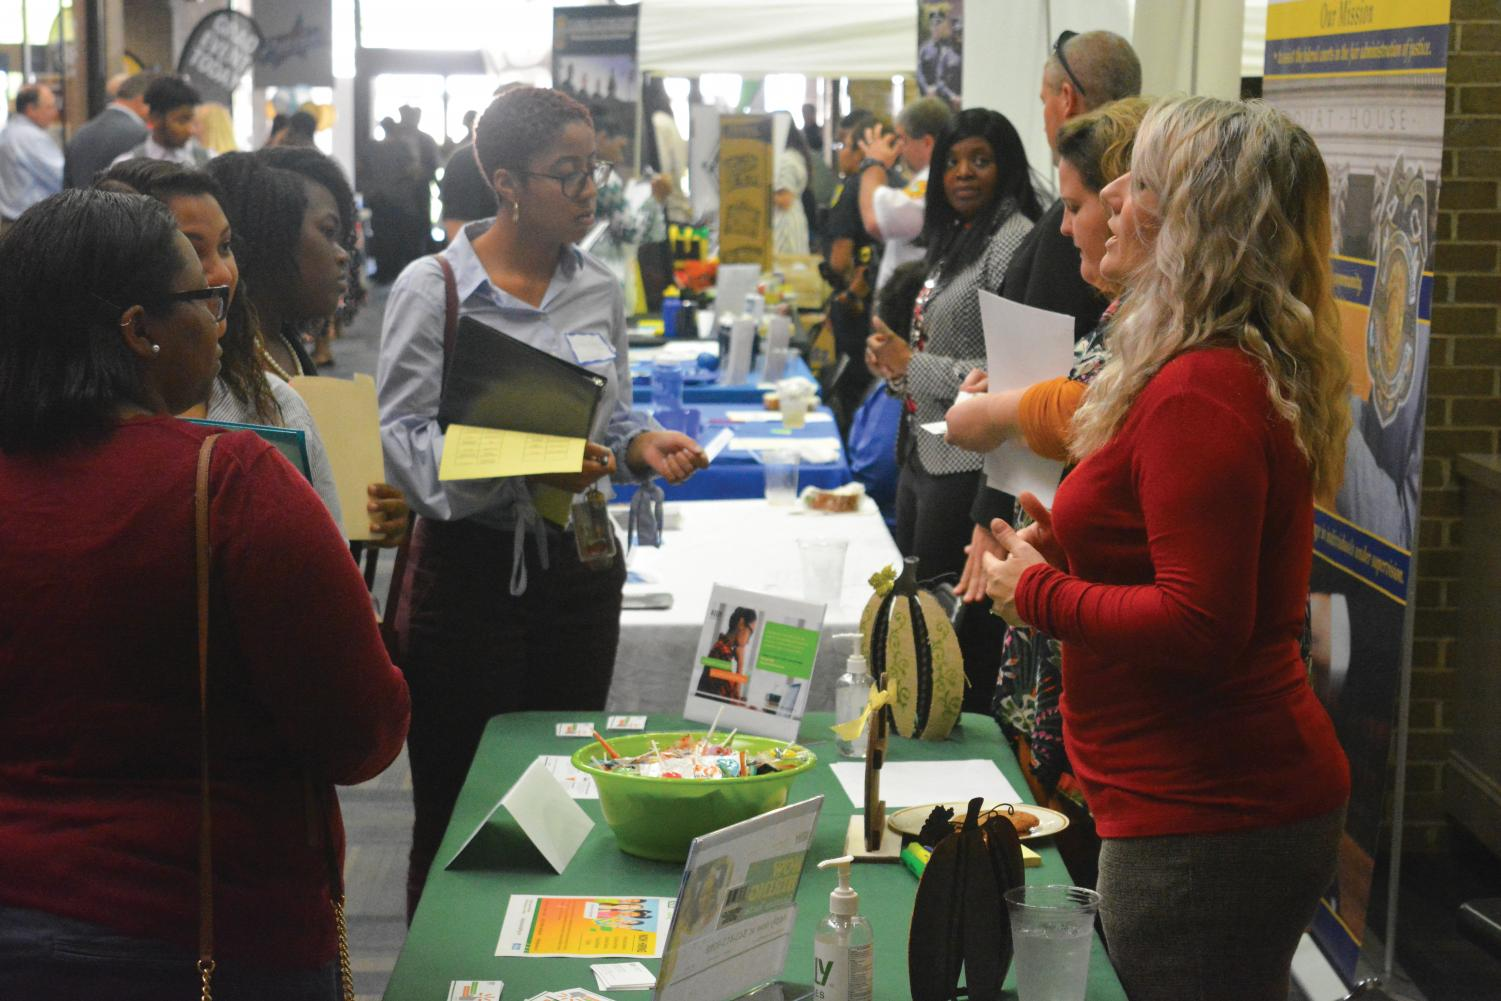 Students gather at the Smith University Center to connect with possible future employers.